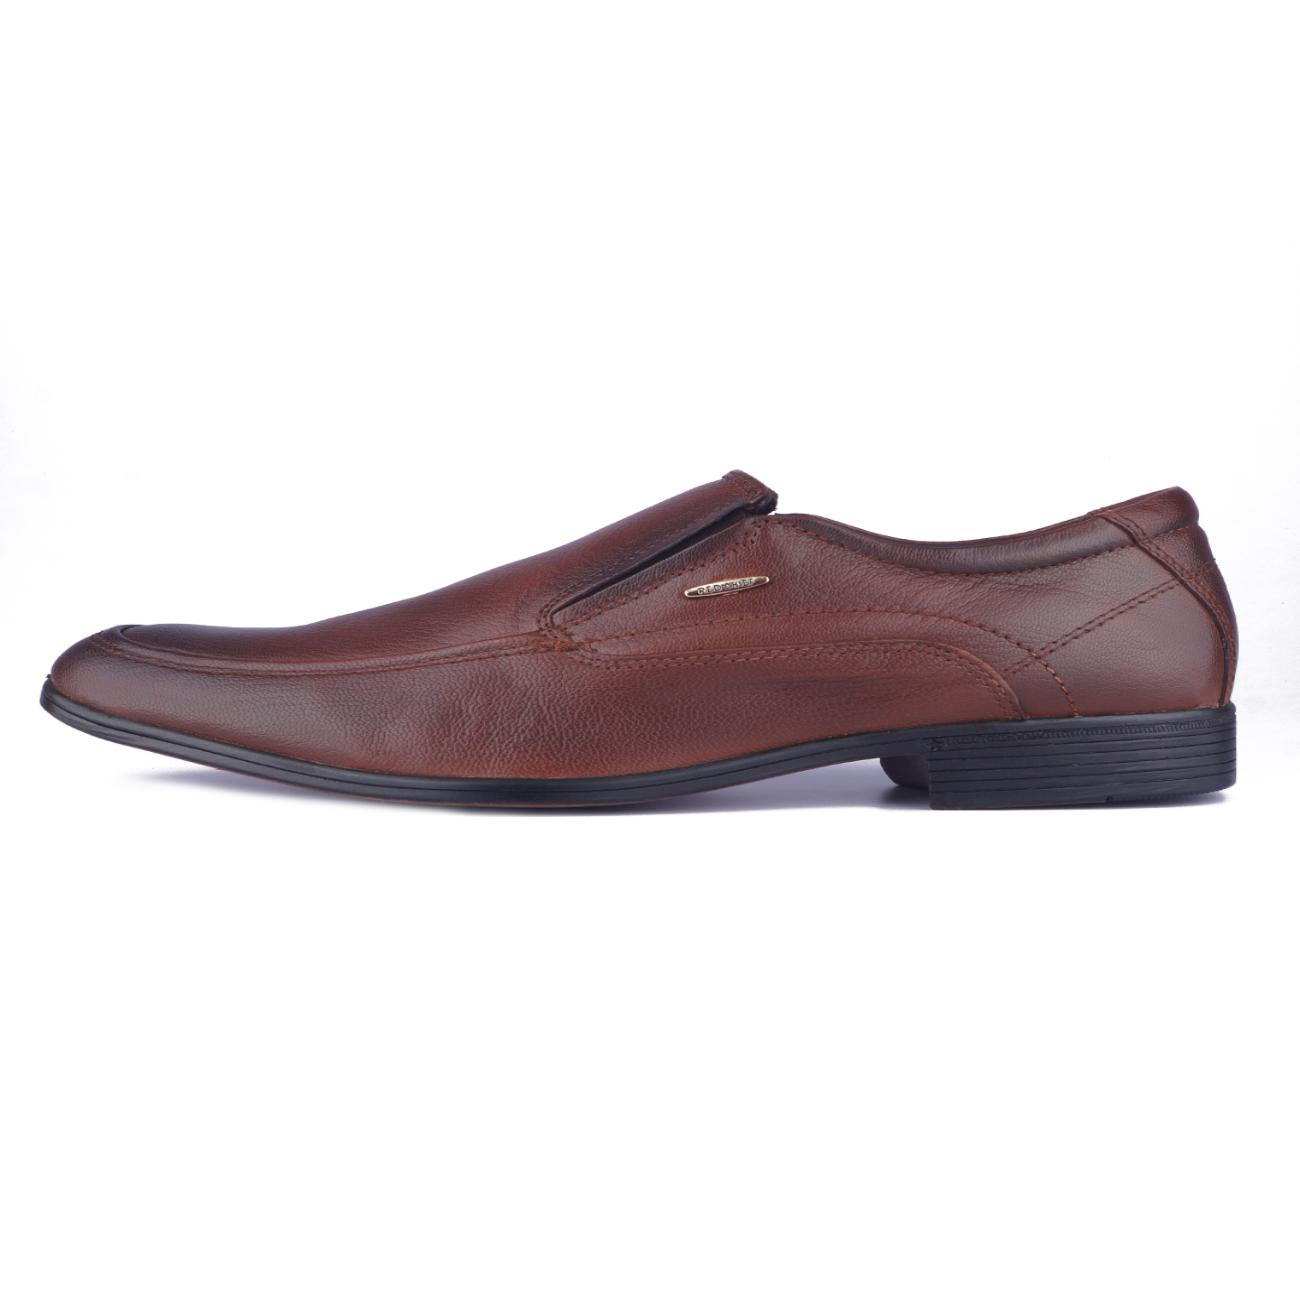 tan leather slip-on formal shoes side view_2